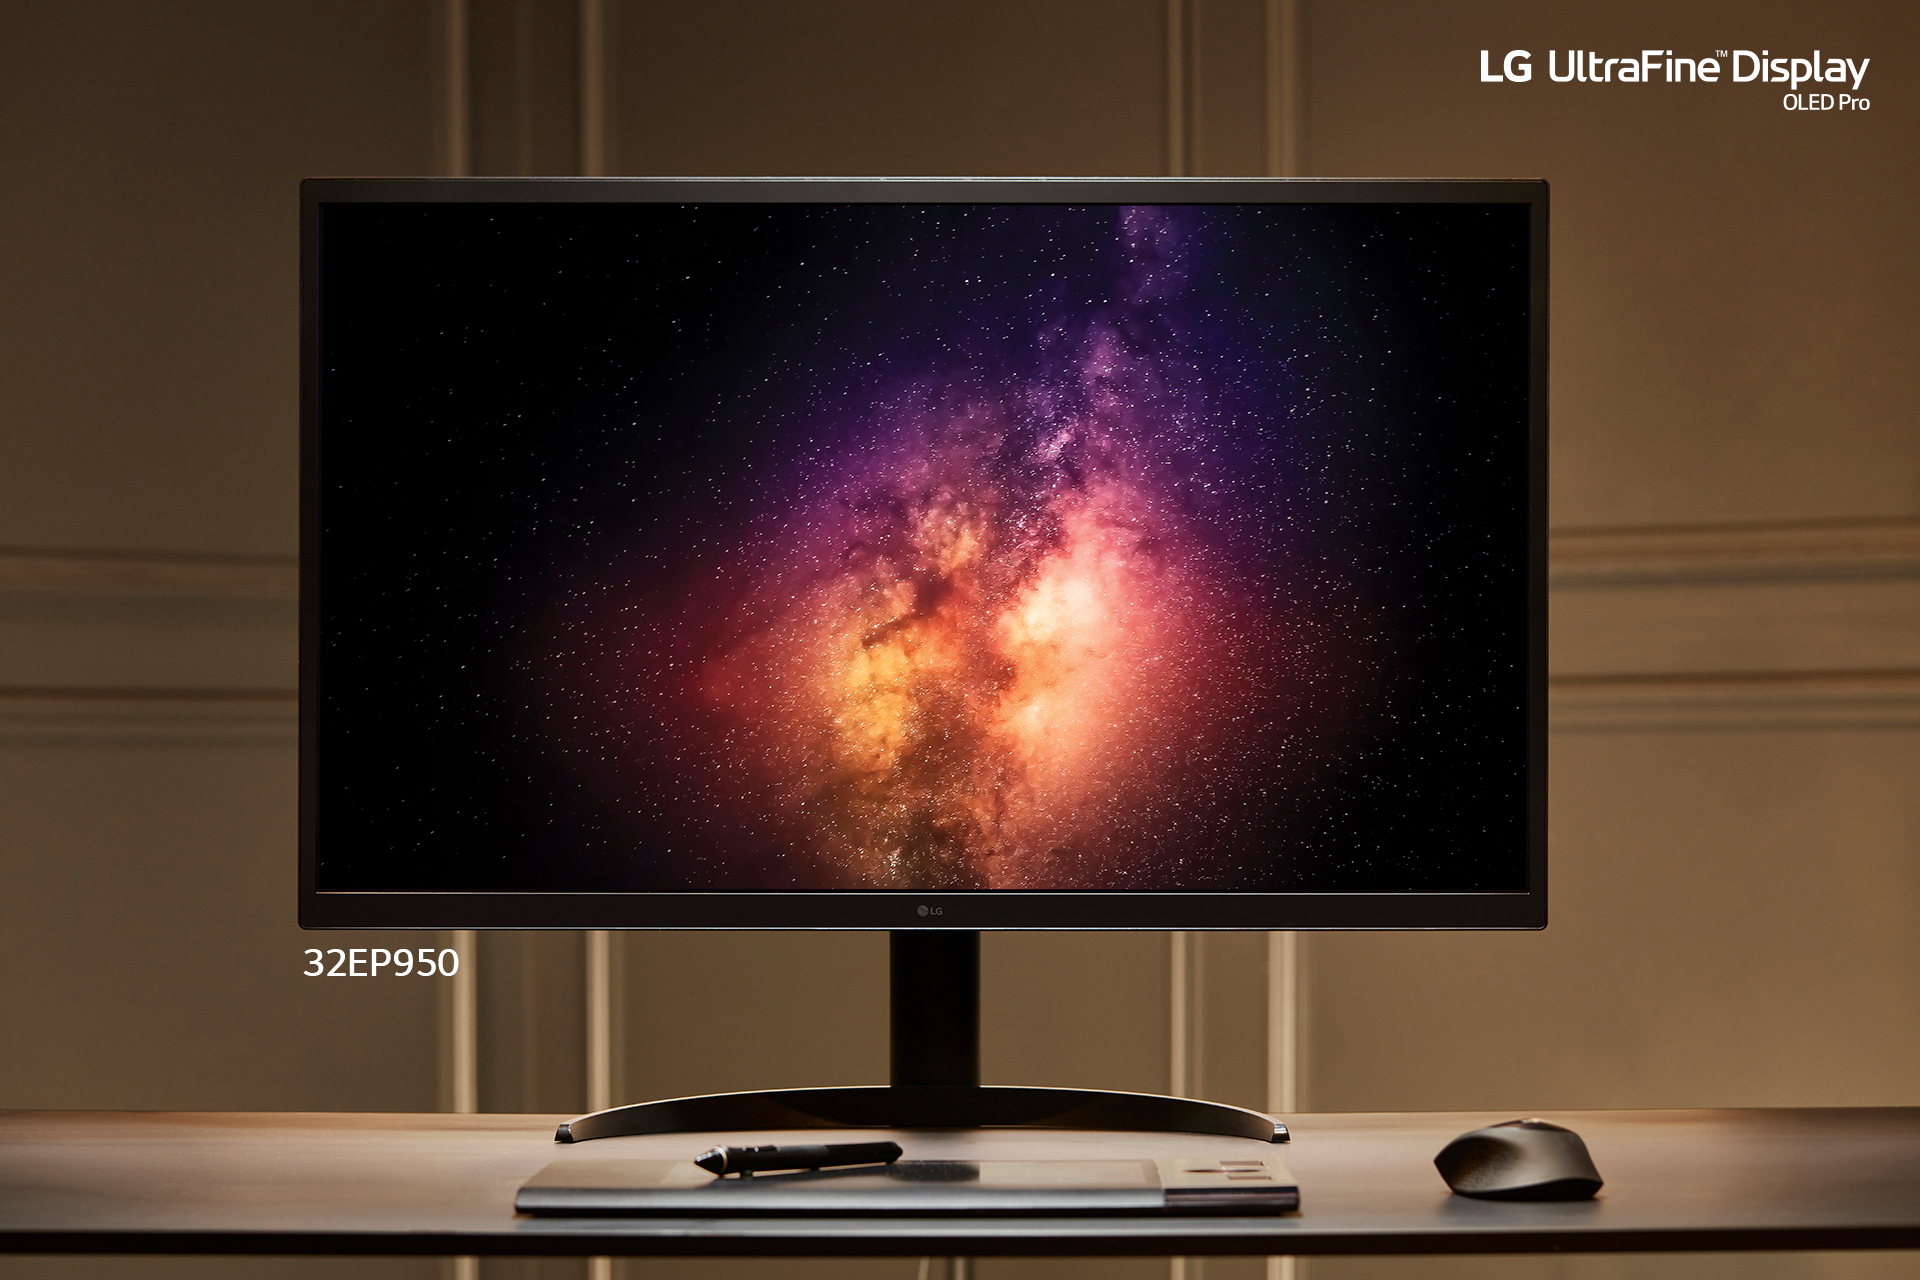 LG's UltraFine Display OLED Pro (model 32EP950) displaying the galaxy in incredible detail and vibrant colors.